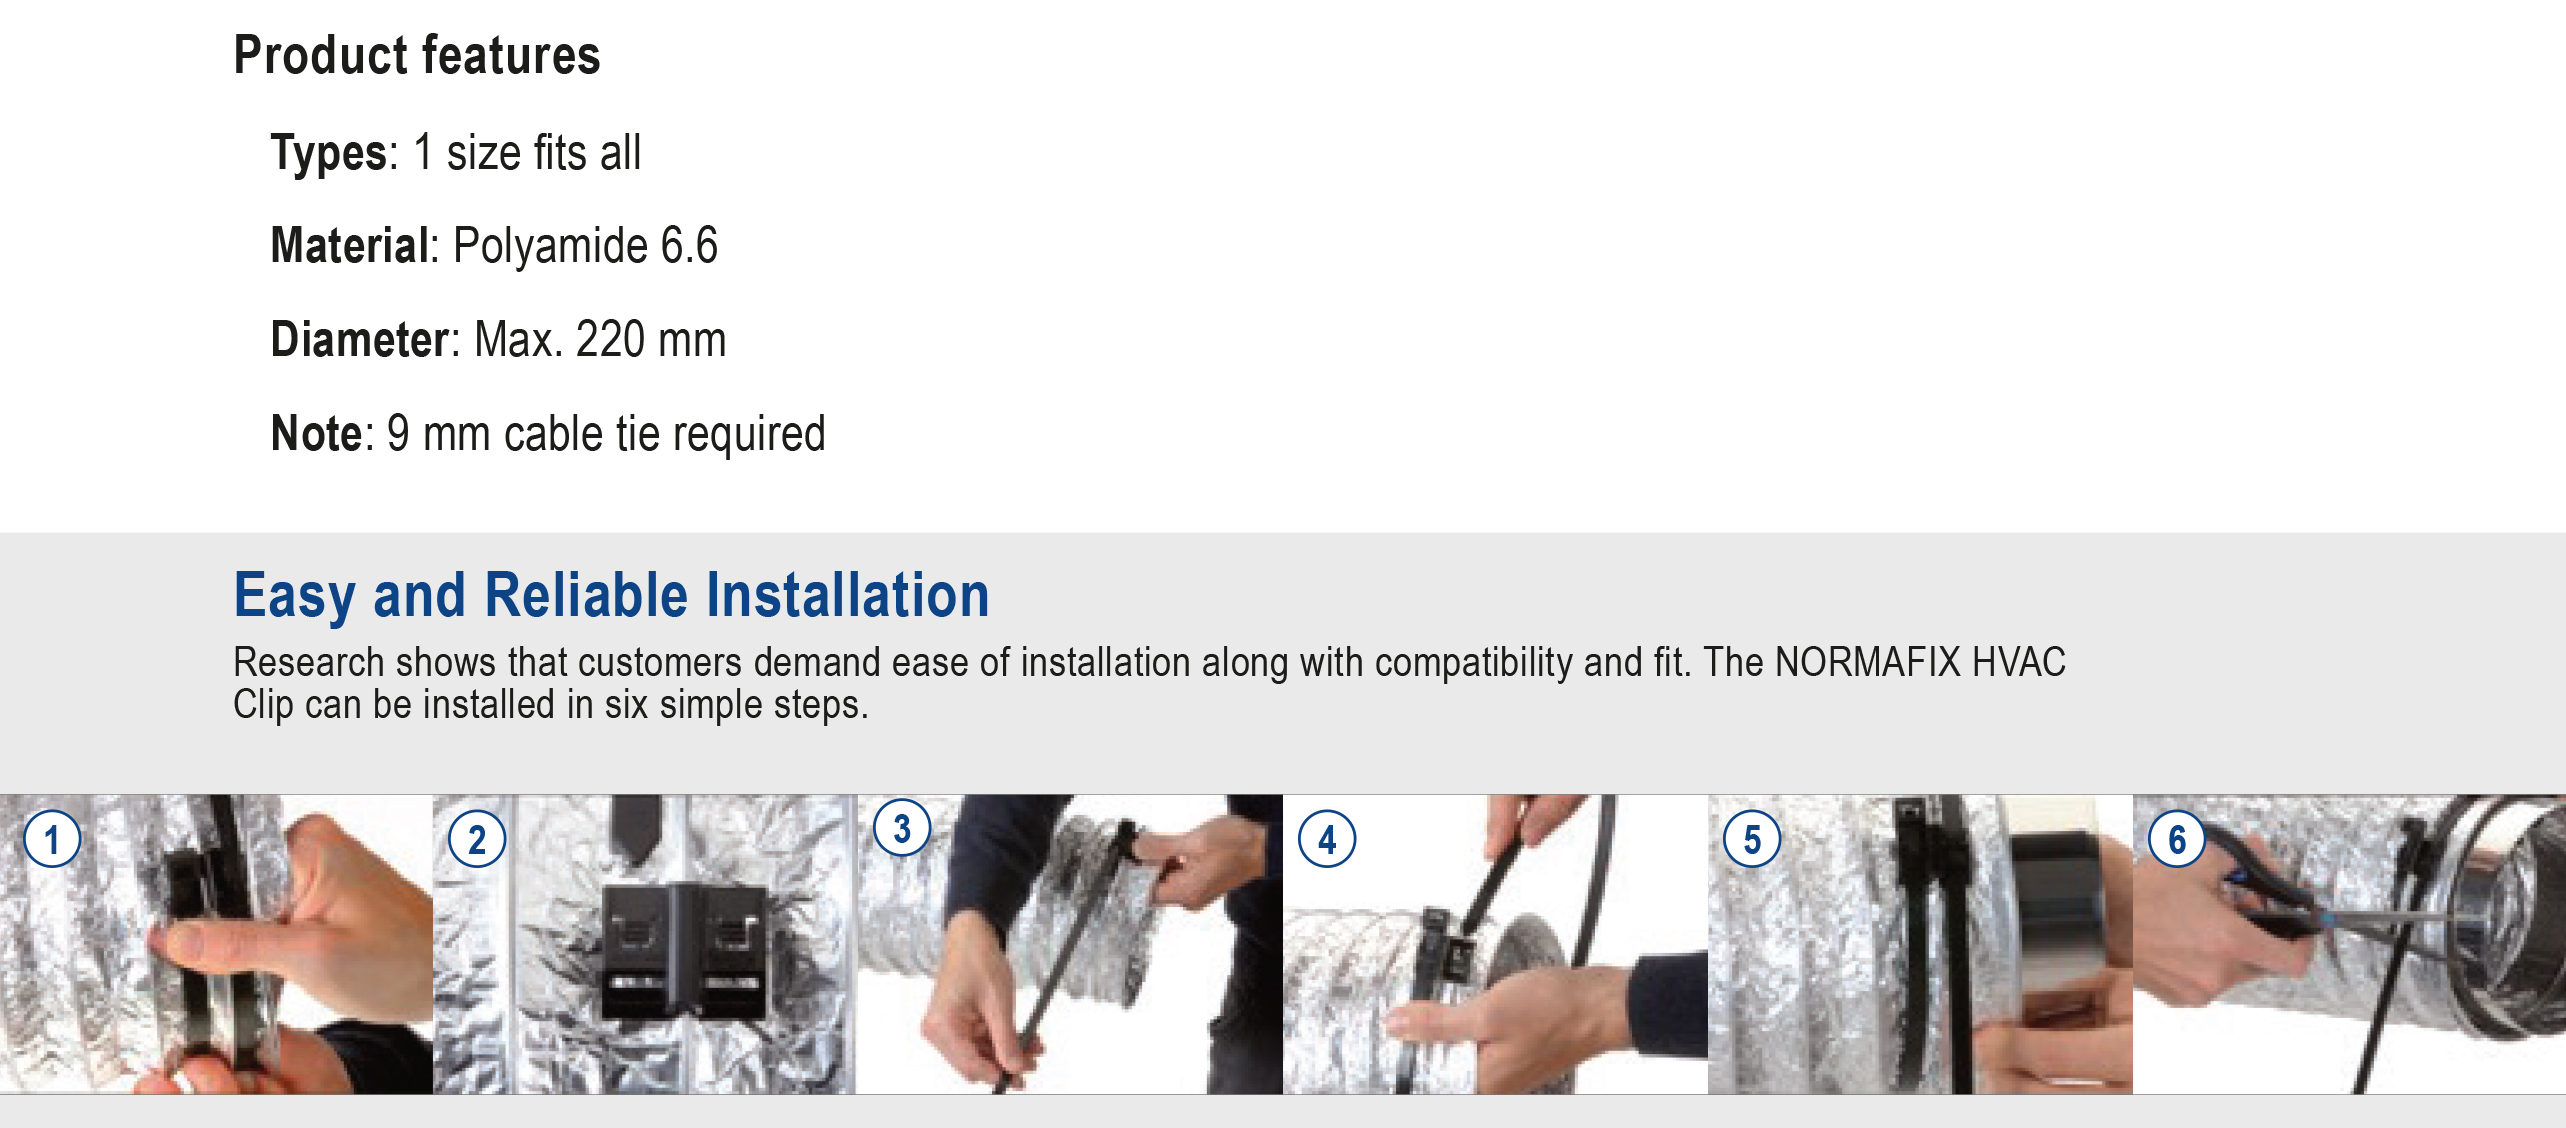 NORMAFIX® HVAC Clip Product Specifications